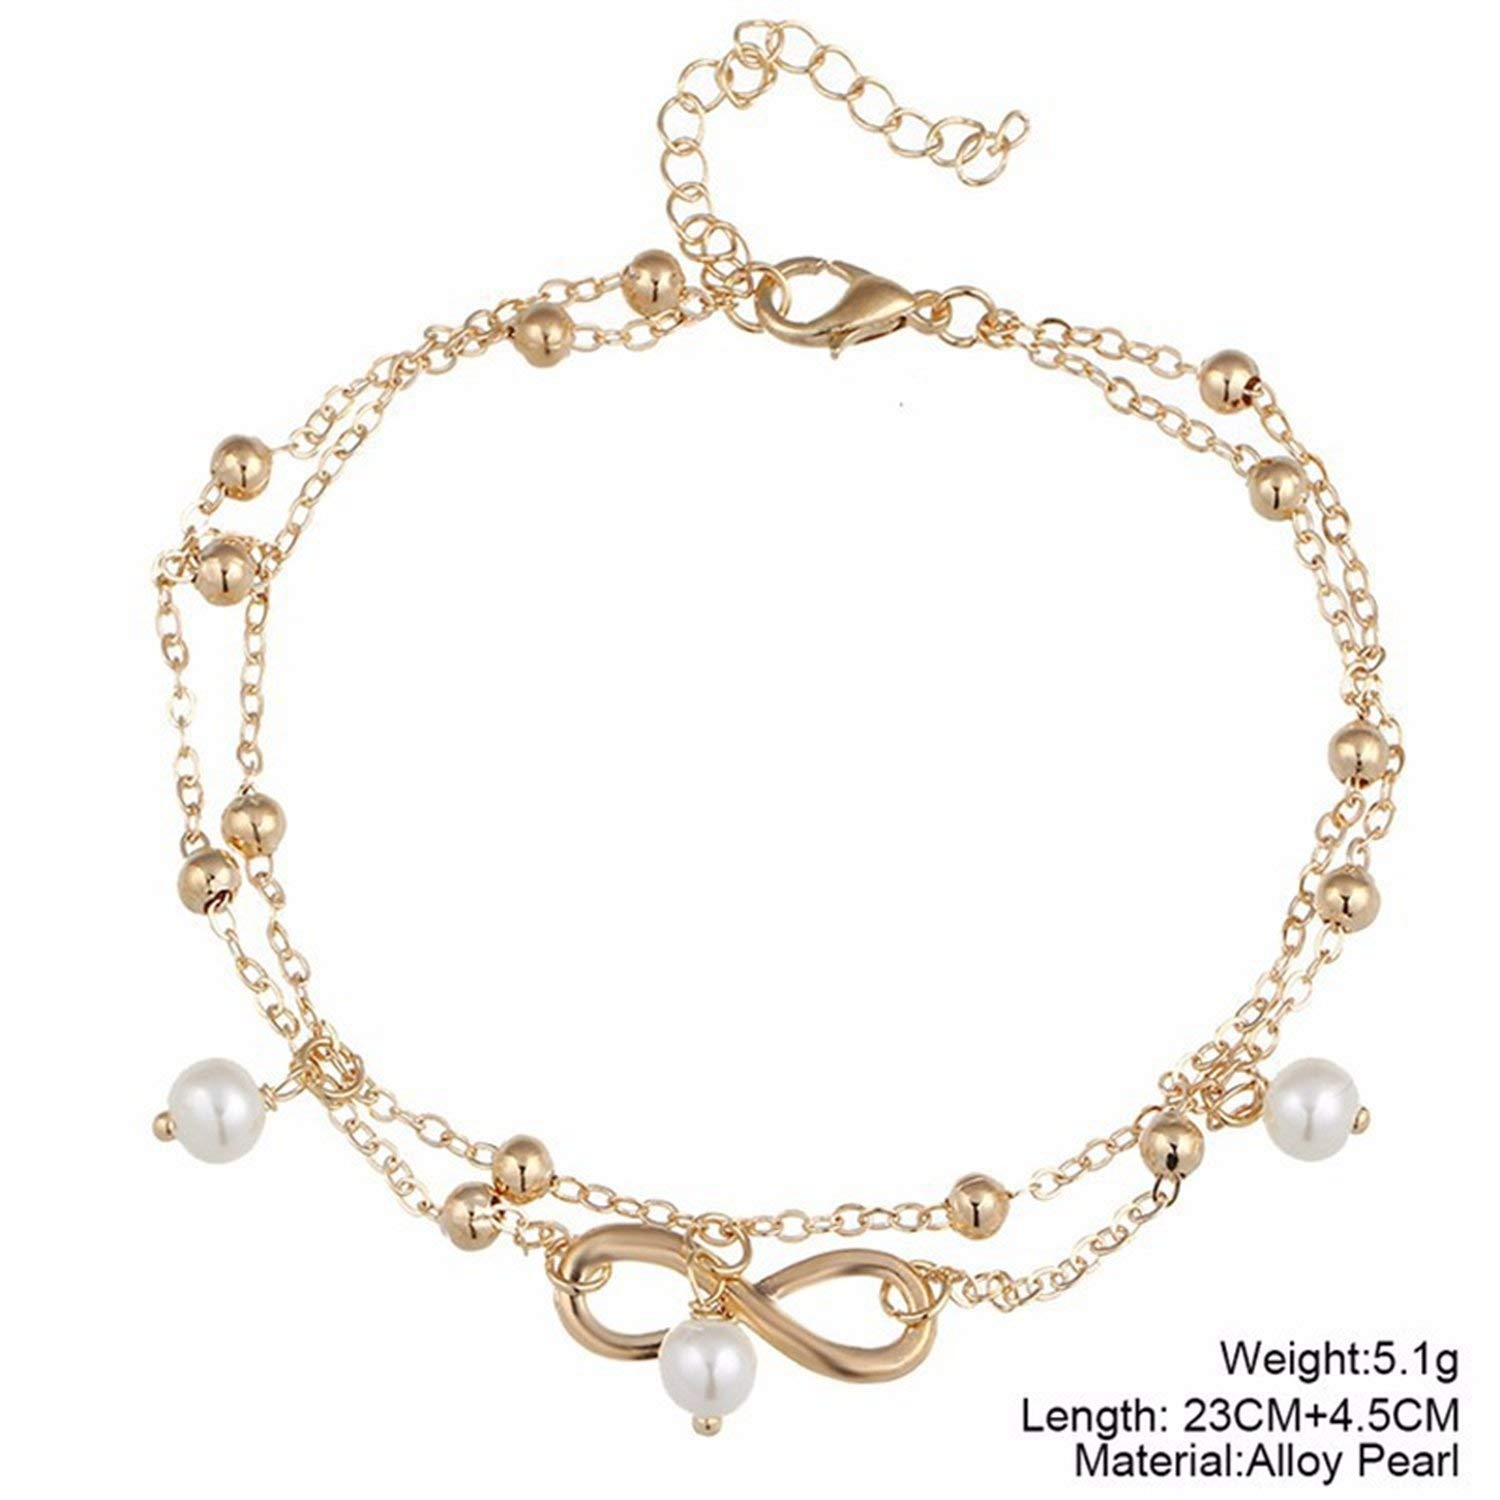 tthappy76 Summer Style Gold//Silver Color Layered Chain Infinity Charm Anklets for Women Ankle Bracelet On The Foot